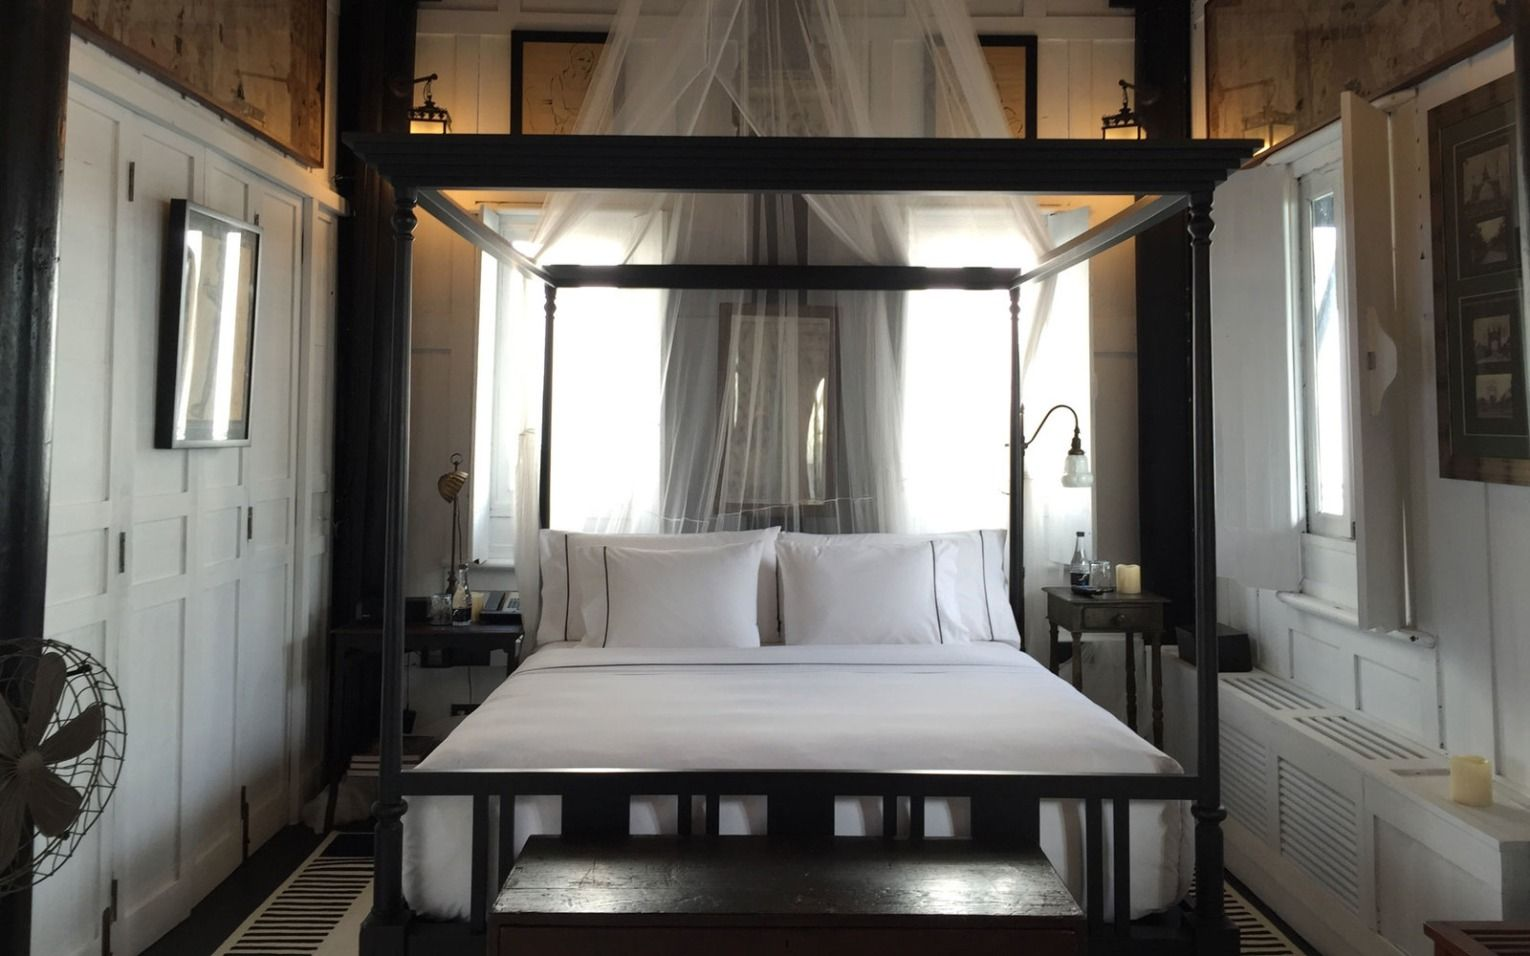 The Siam: The land that houses Bangkok's The Siam has been in the Sukosol family since 1973. And though the property, situated along the Chao Praya River, has a storied history of its own, the most notable aspect of the modern hotel is one of its rooms: Connie's Cottage.